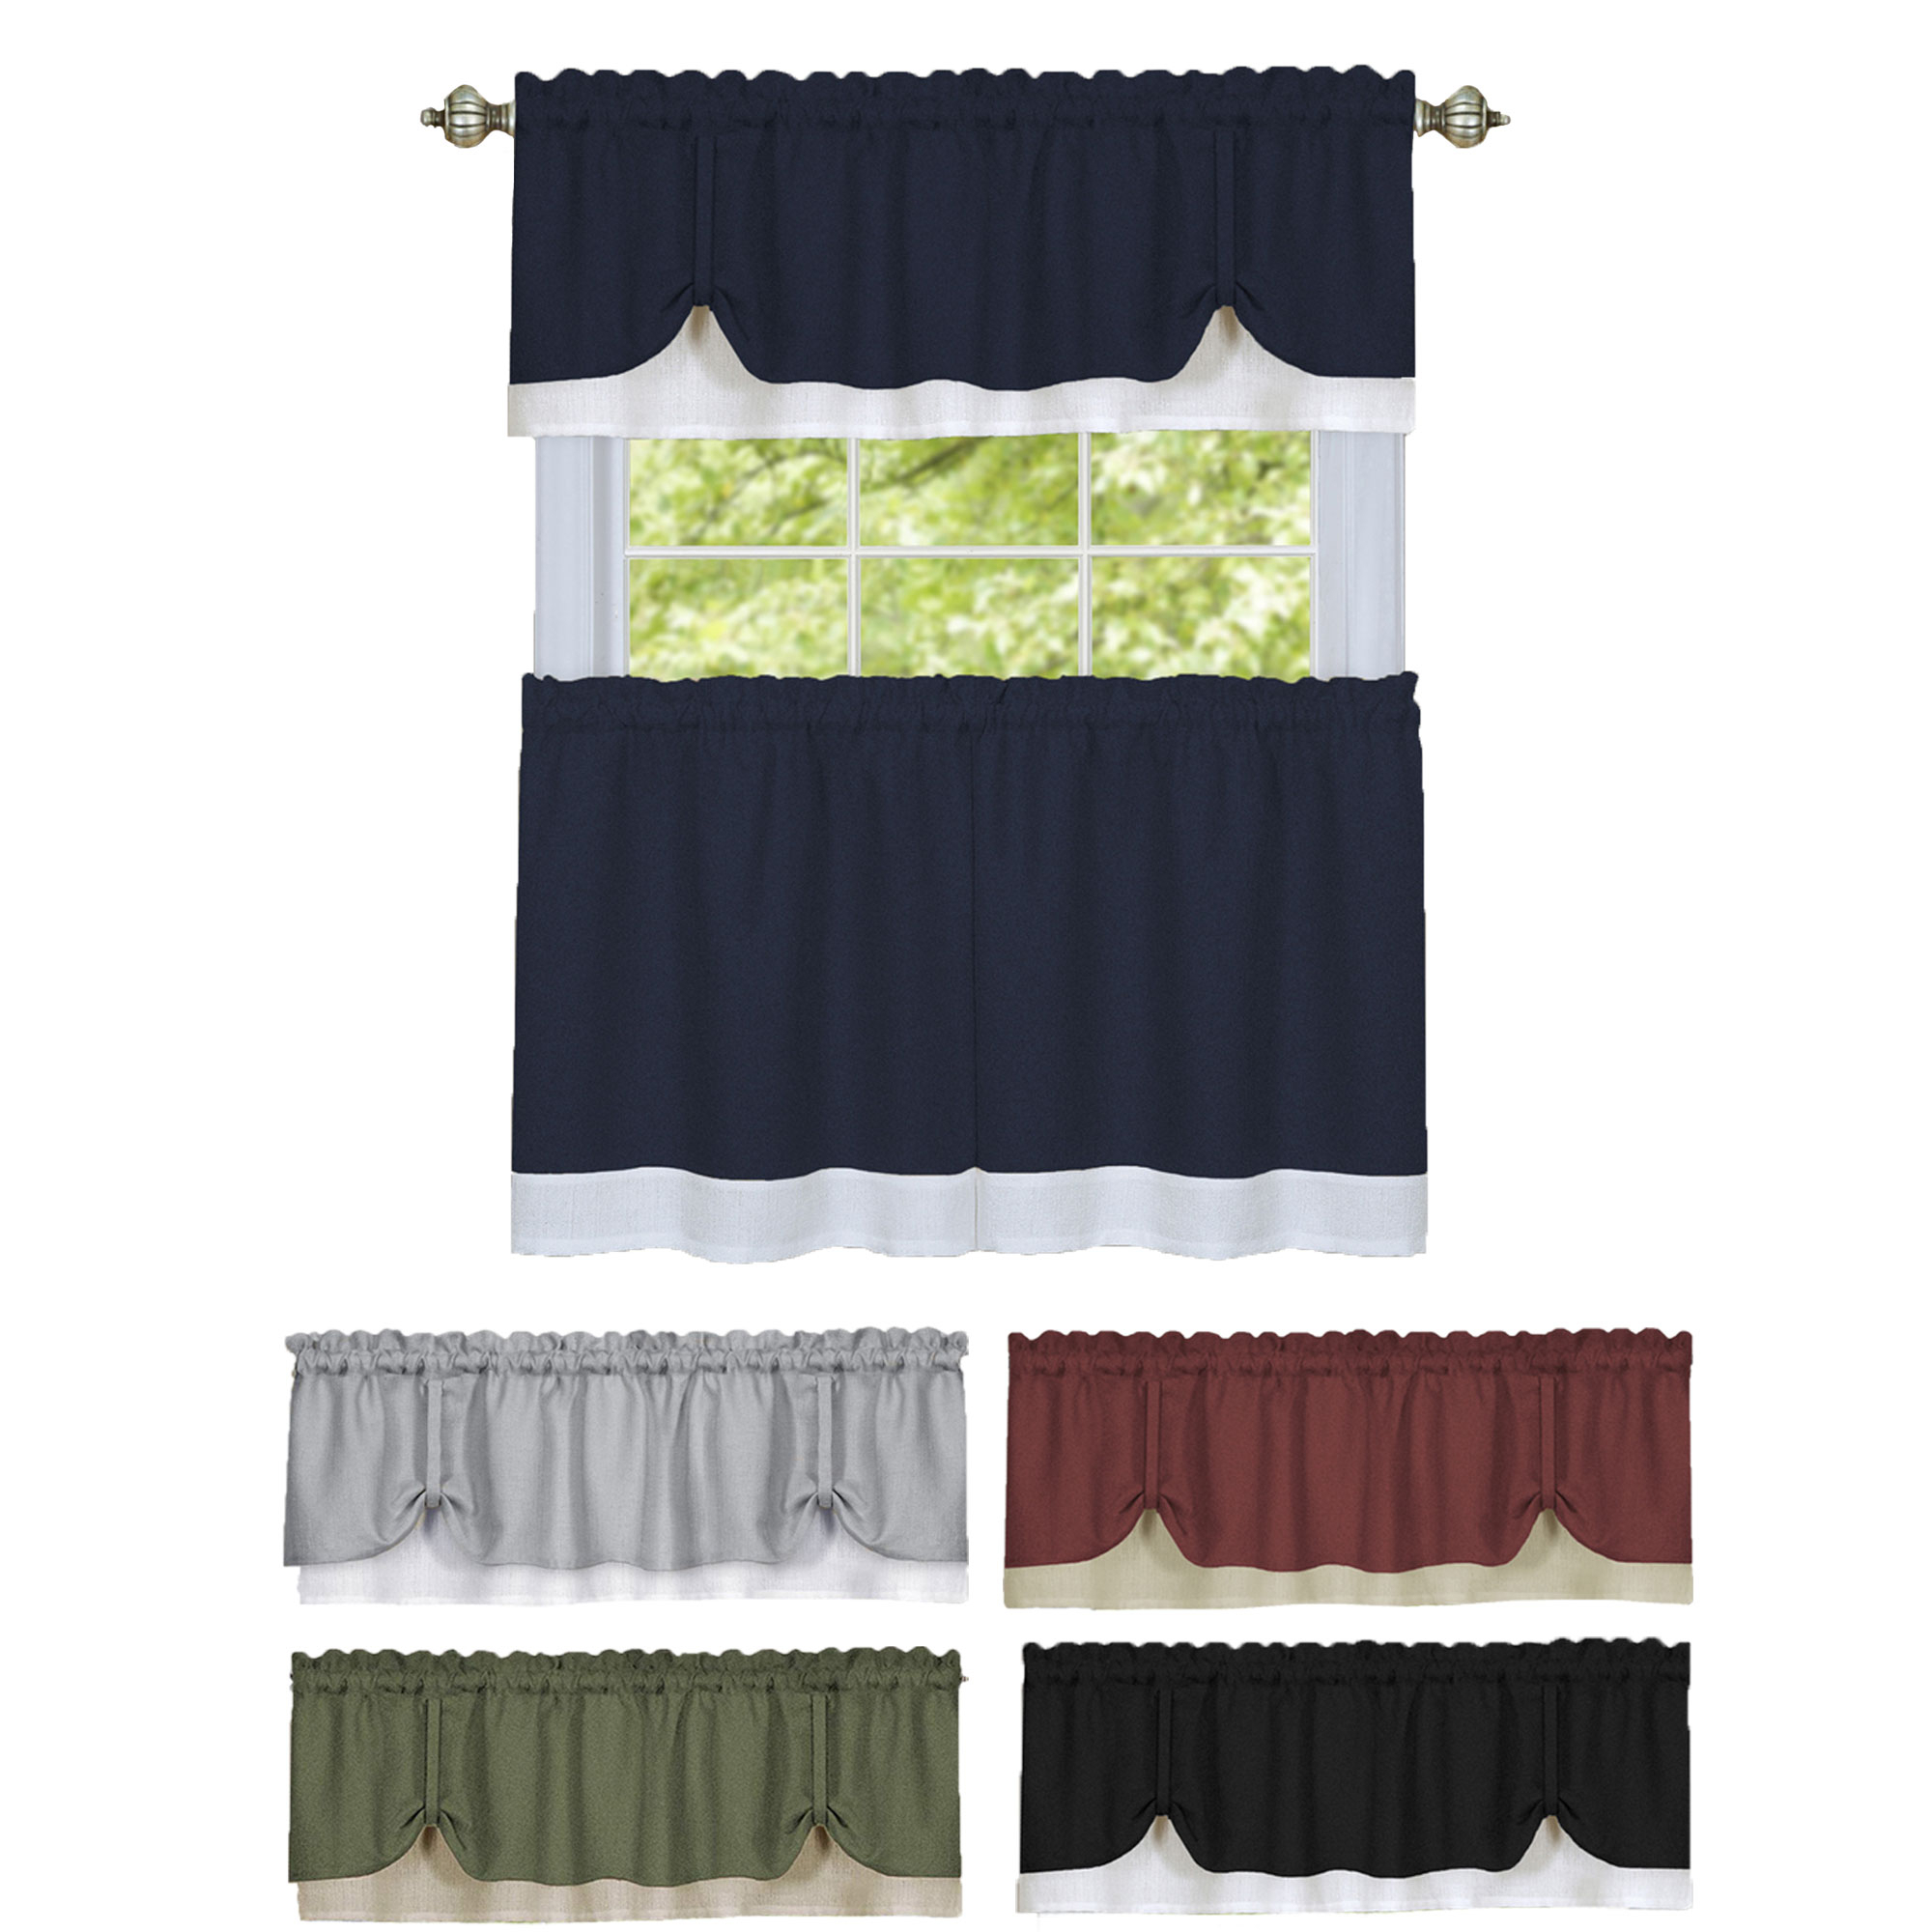 Details About Solid Window Curtain Double Layer Tier Pair & Valance Set Within Most Current Touch Of Spring 24 Inch Tier Pairs (View 1 of 20)